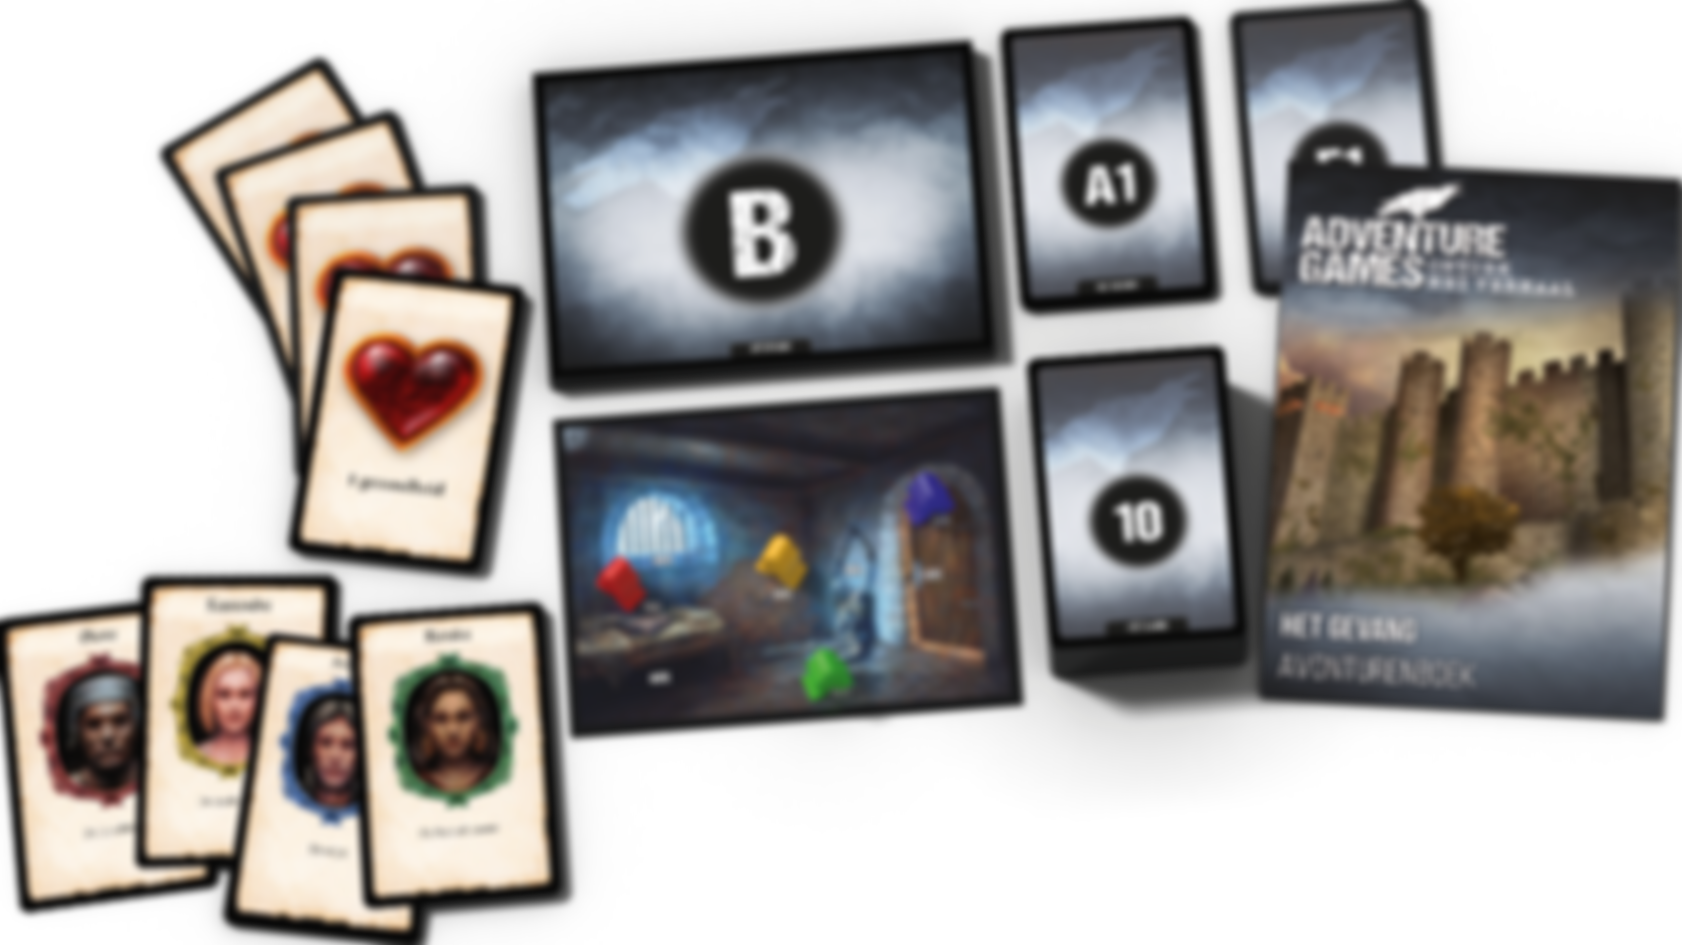 Adventure Games: The Dungeon components